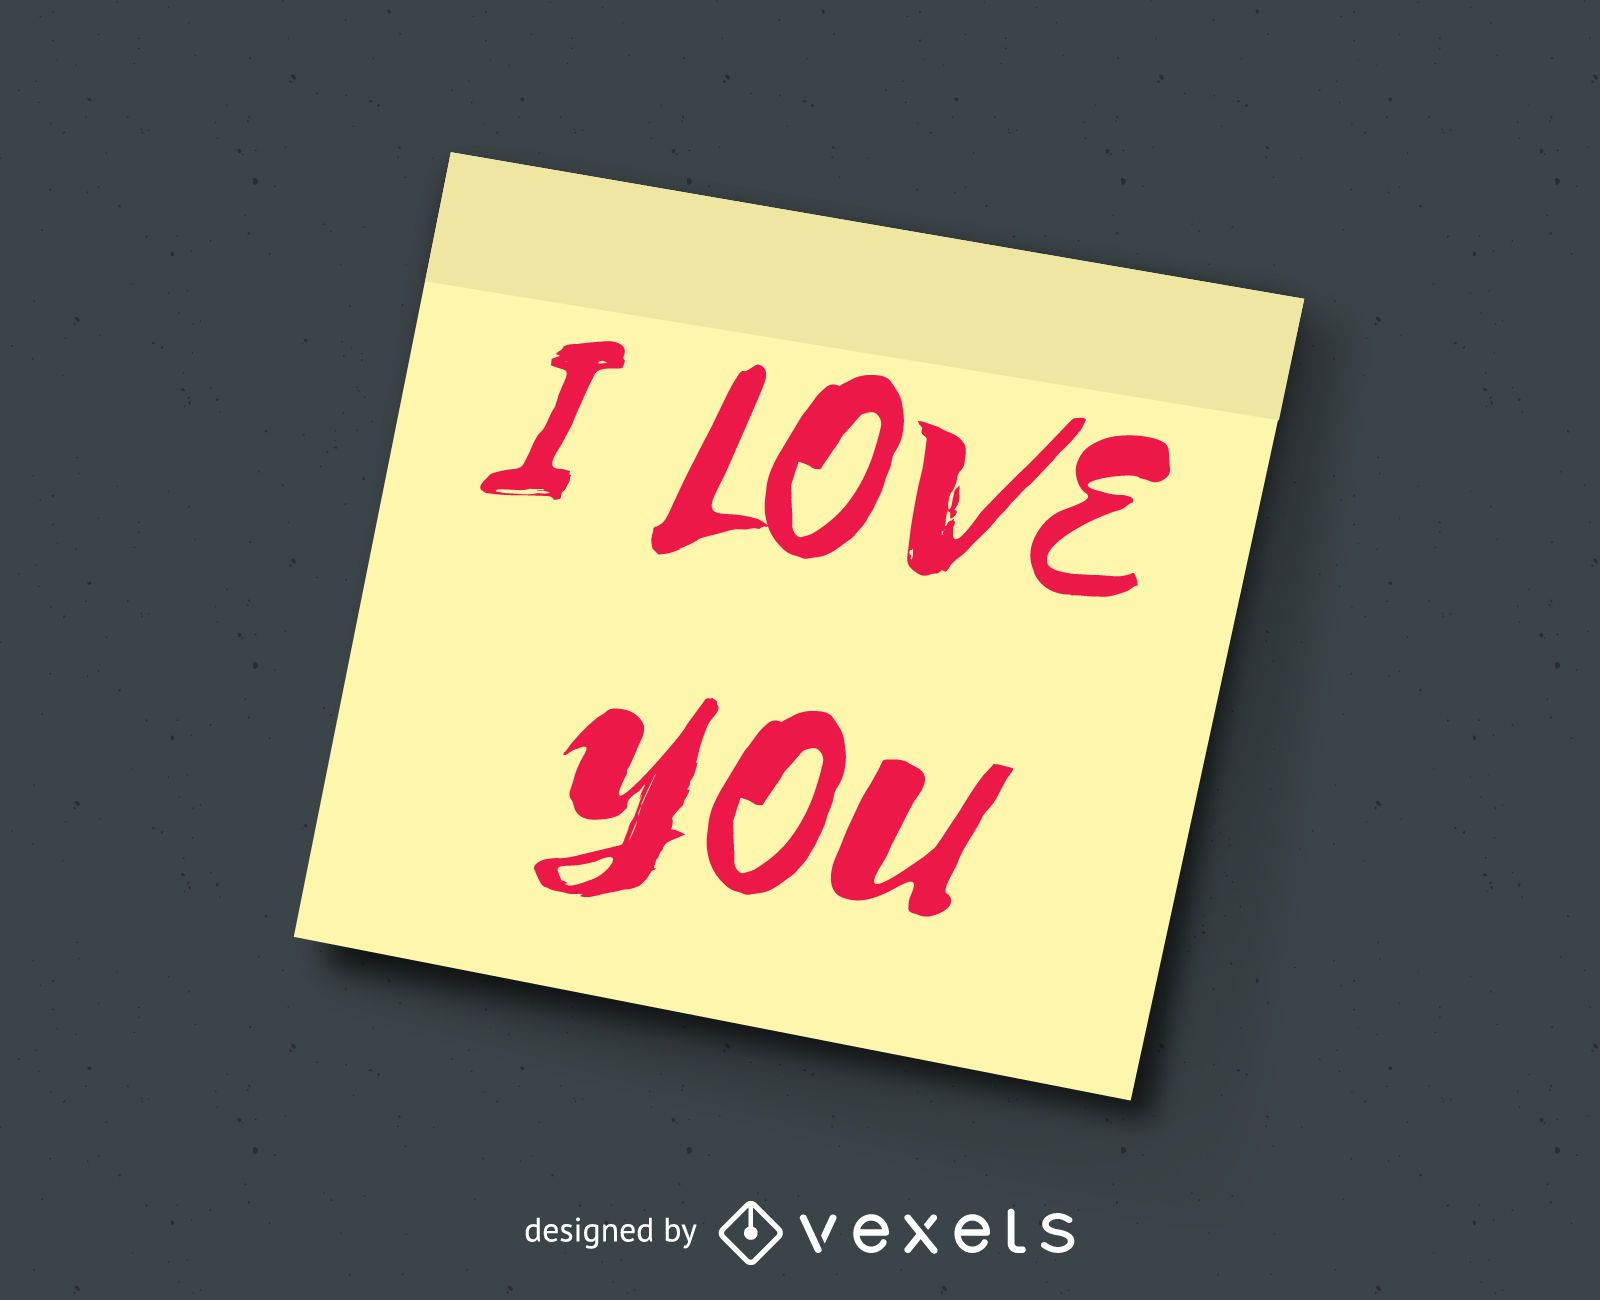 I love you post it note illustration